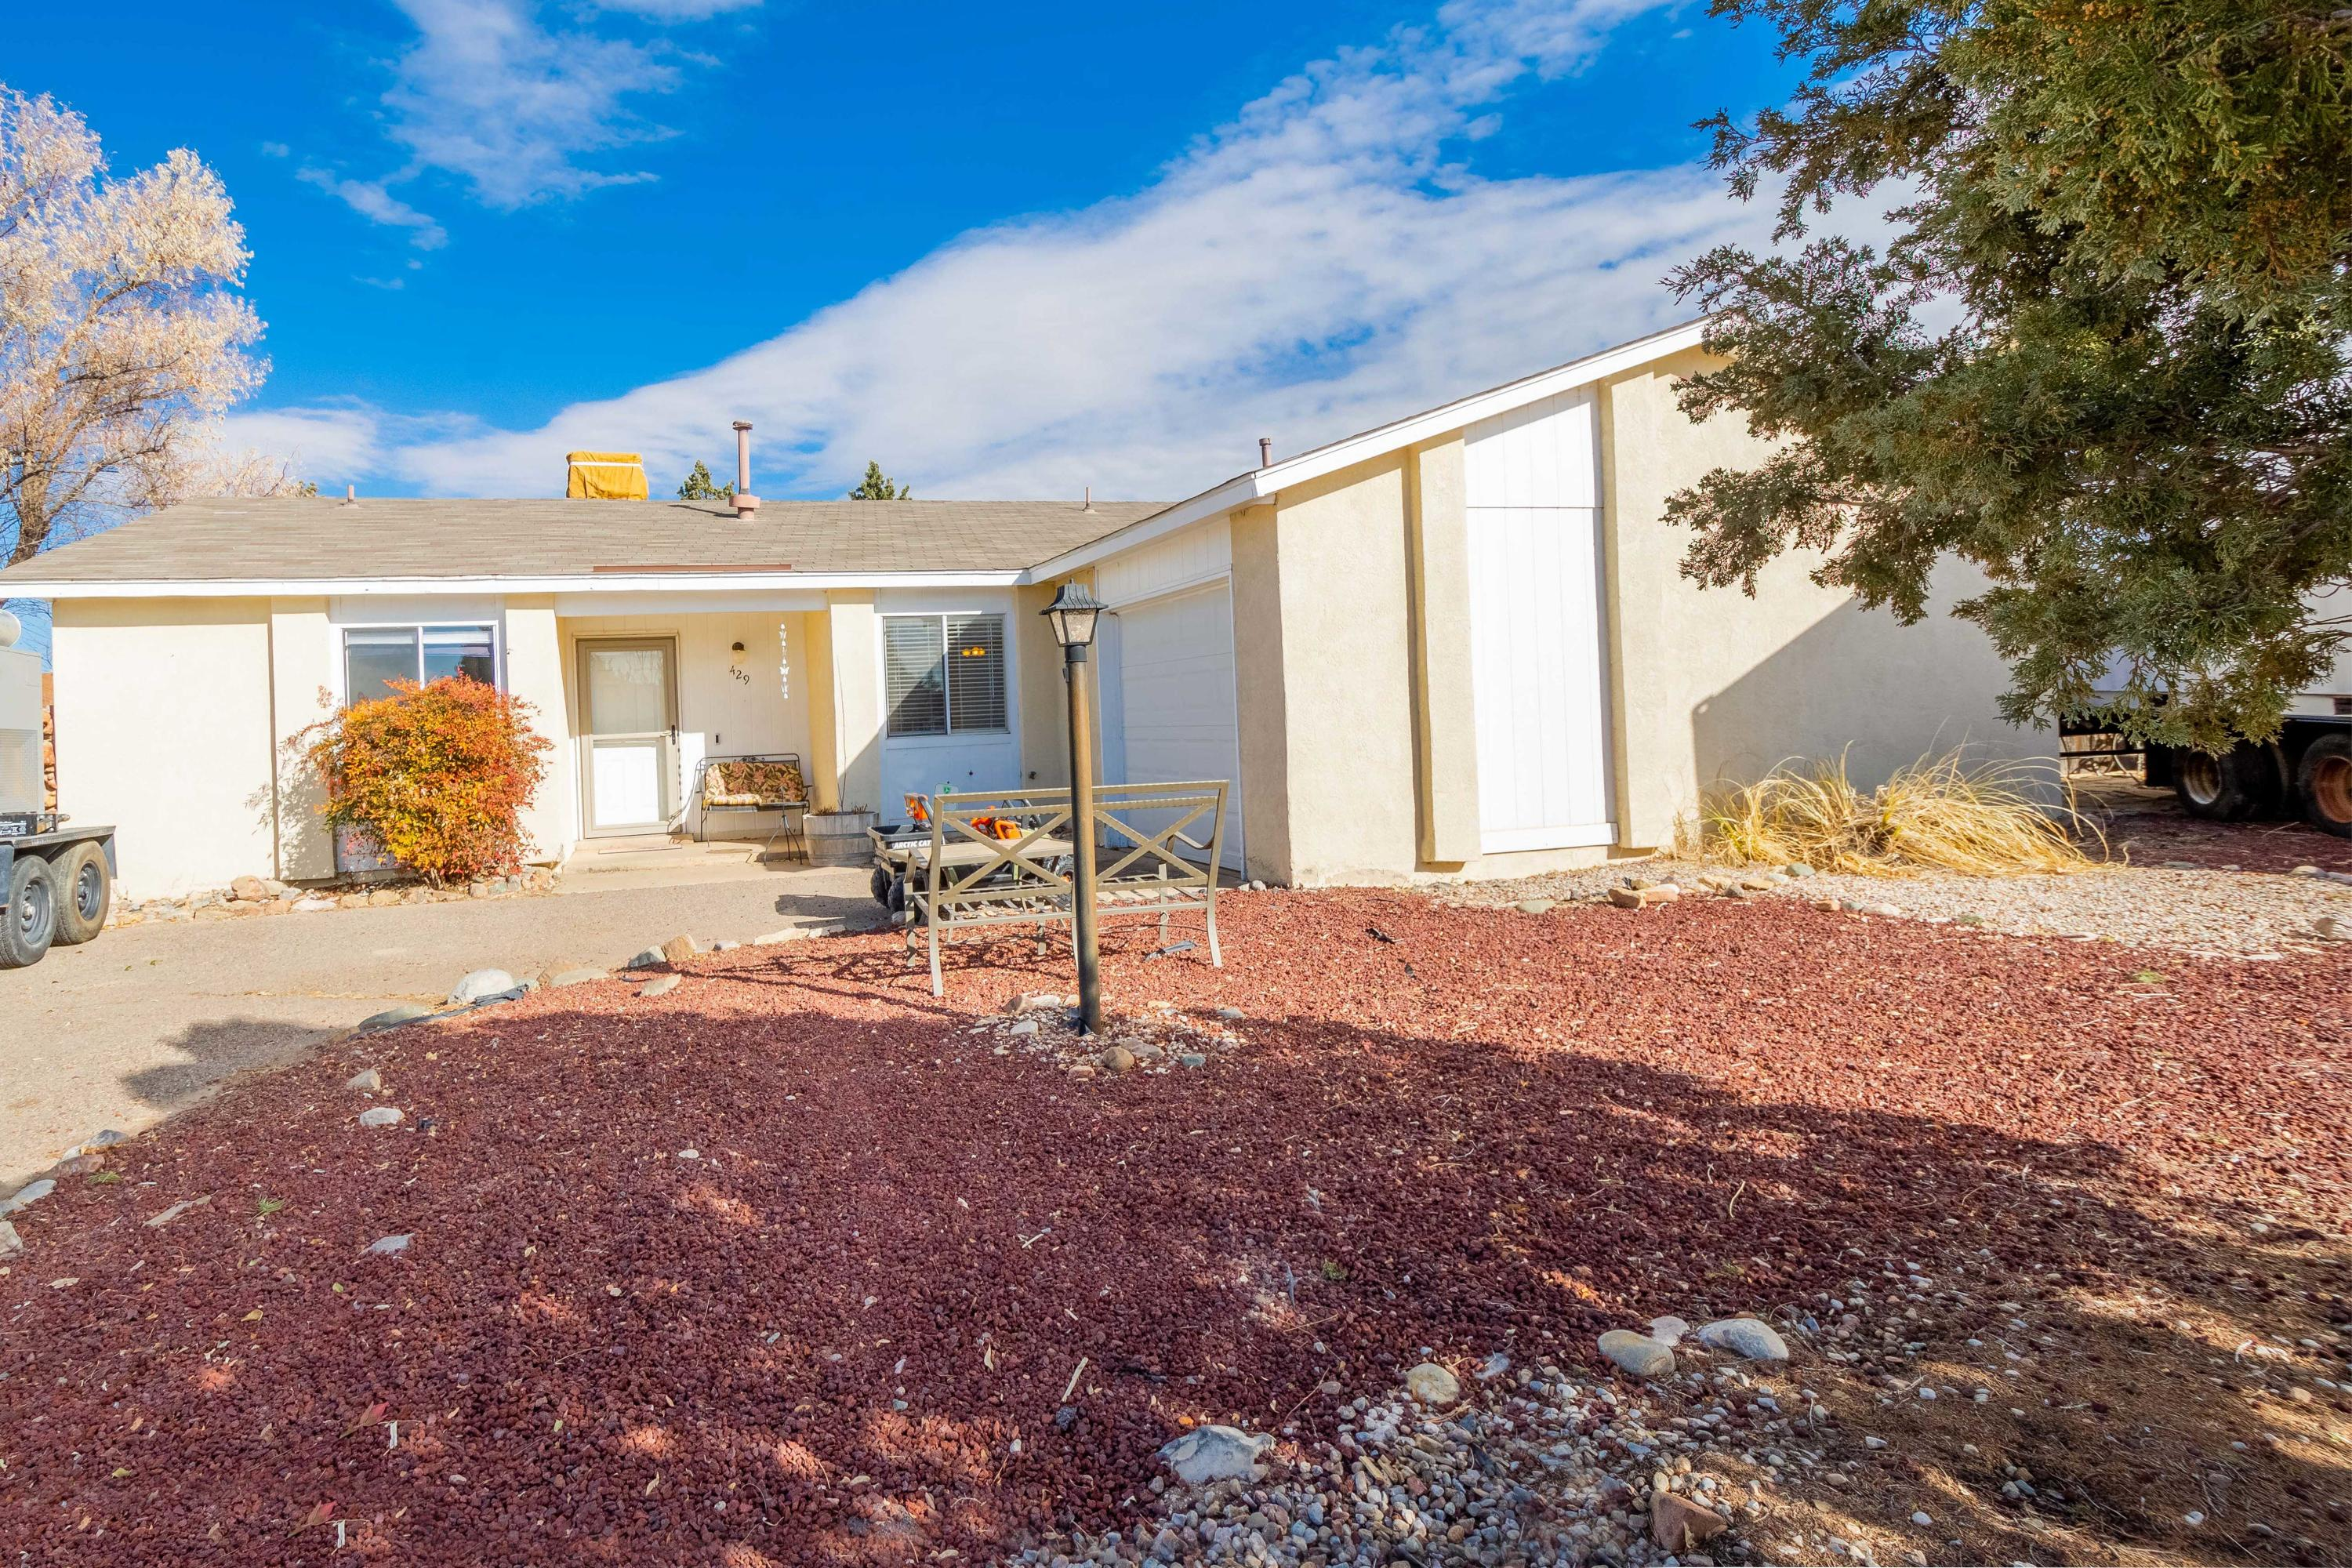 Check out this perfect home in Rio Rancho located near the intersection of Paseo Del Norte and Unser.  This beautiful home will sell fast!  Please make your offer today.  Buyers will be making a decision very soon.